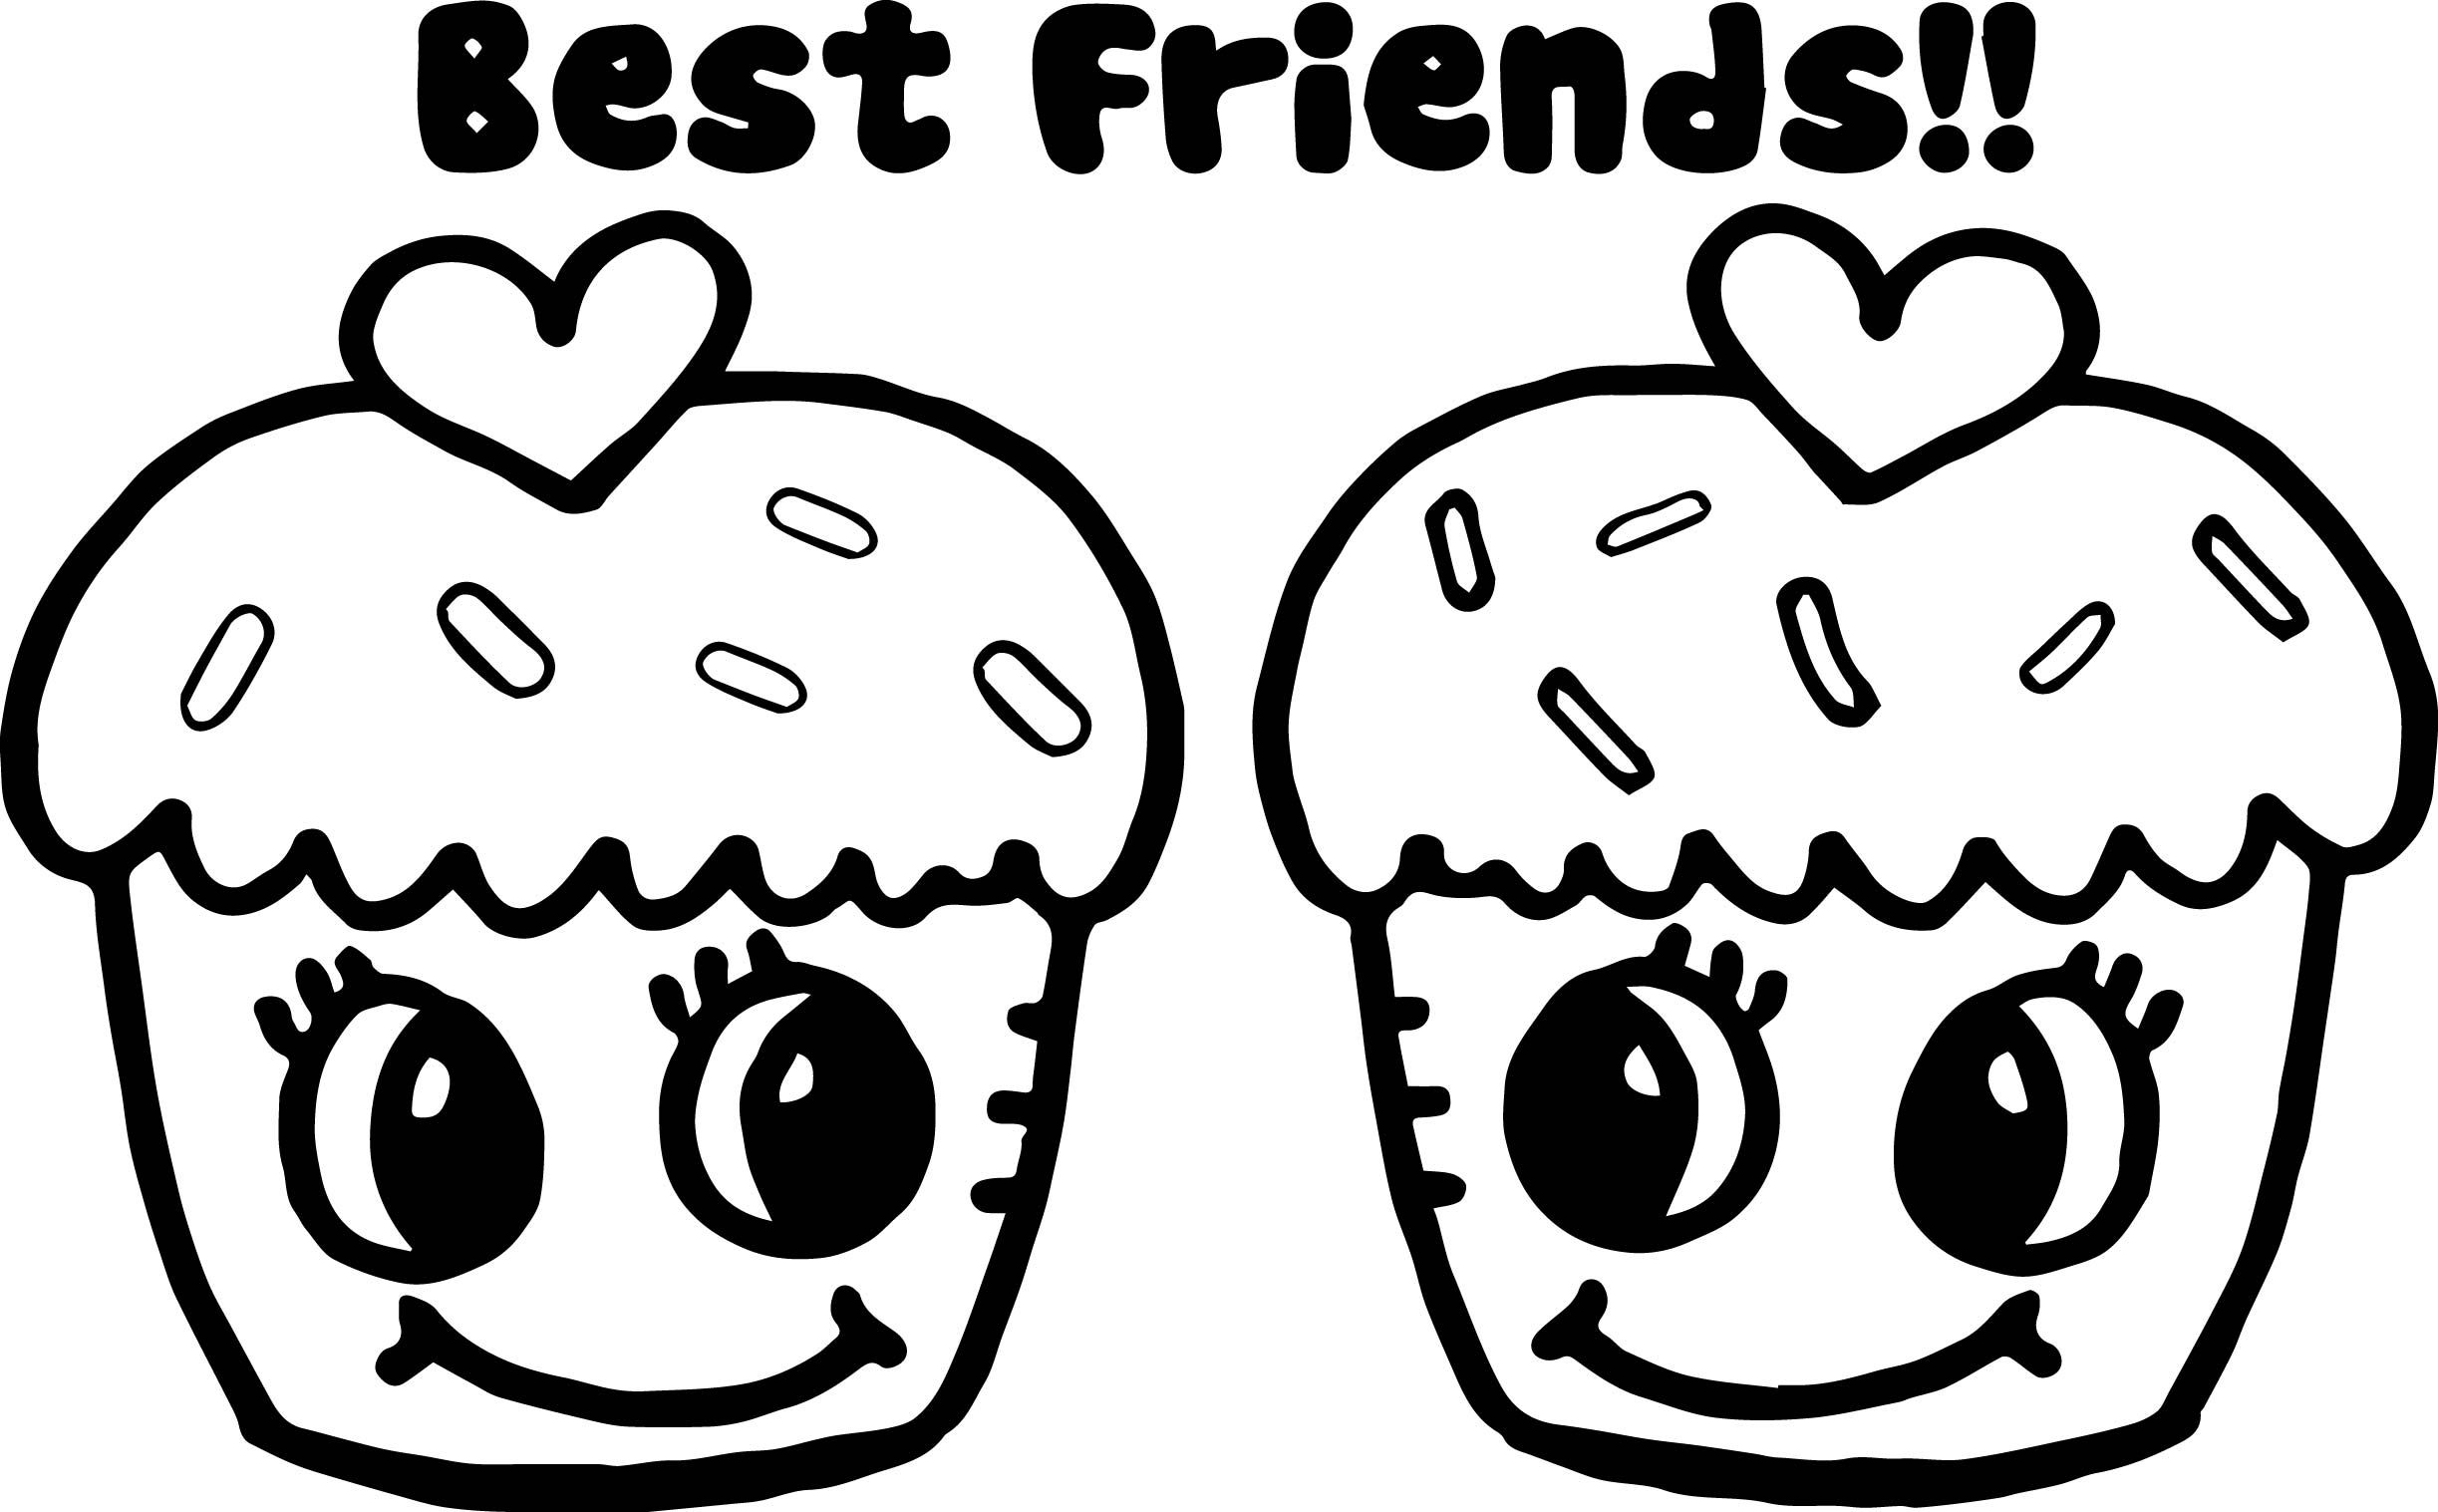 Cupcakes Best Friends Coloring Page Cupcake Coloring Pages Birthday Coloring Pages Cute Coloring Pages